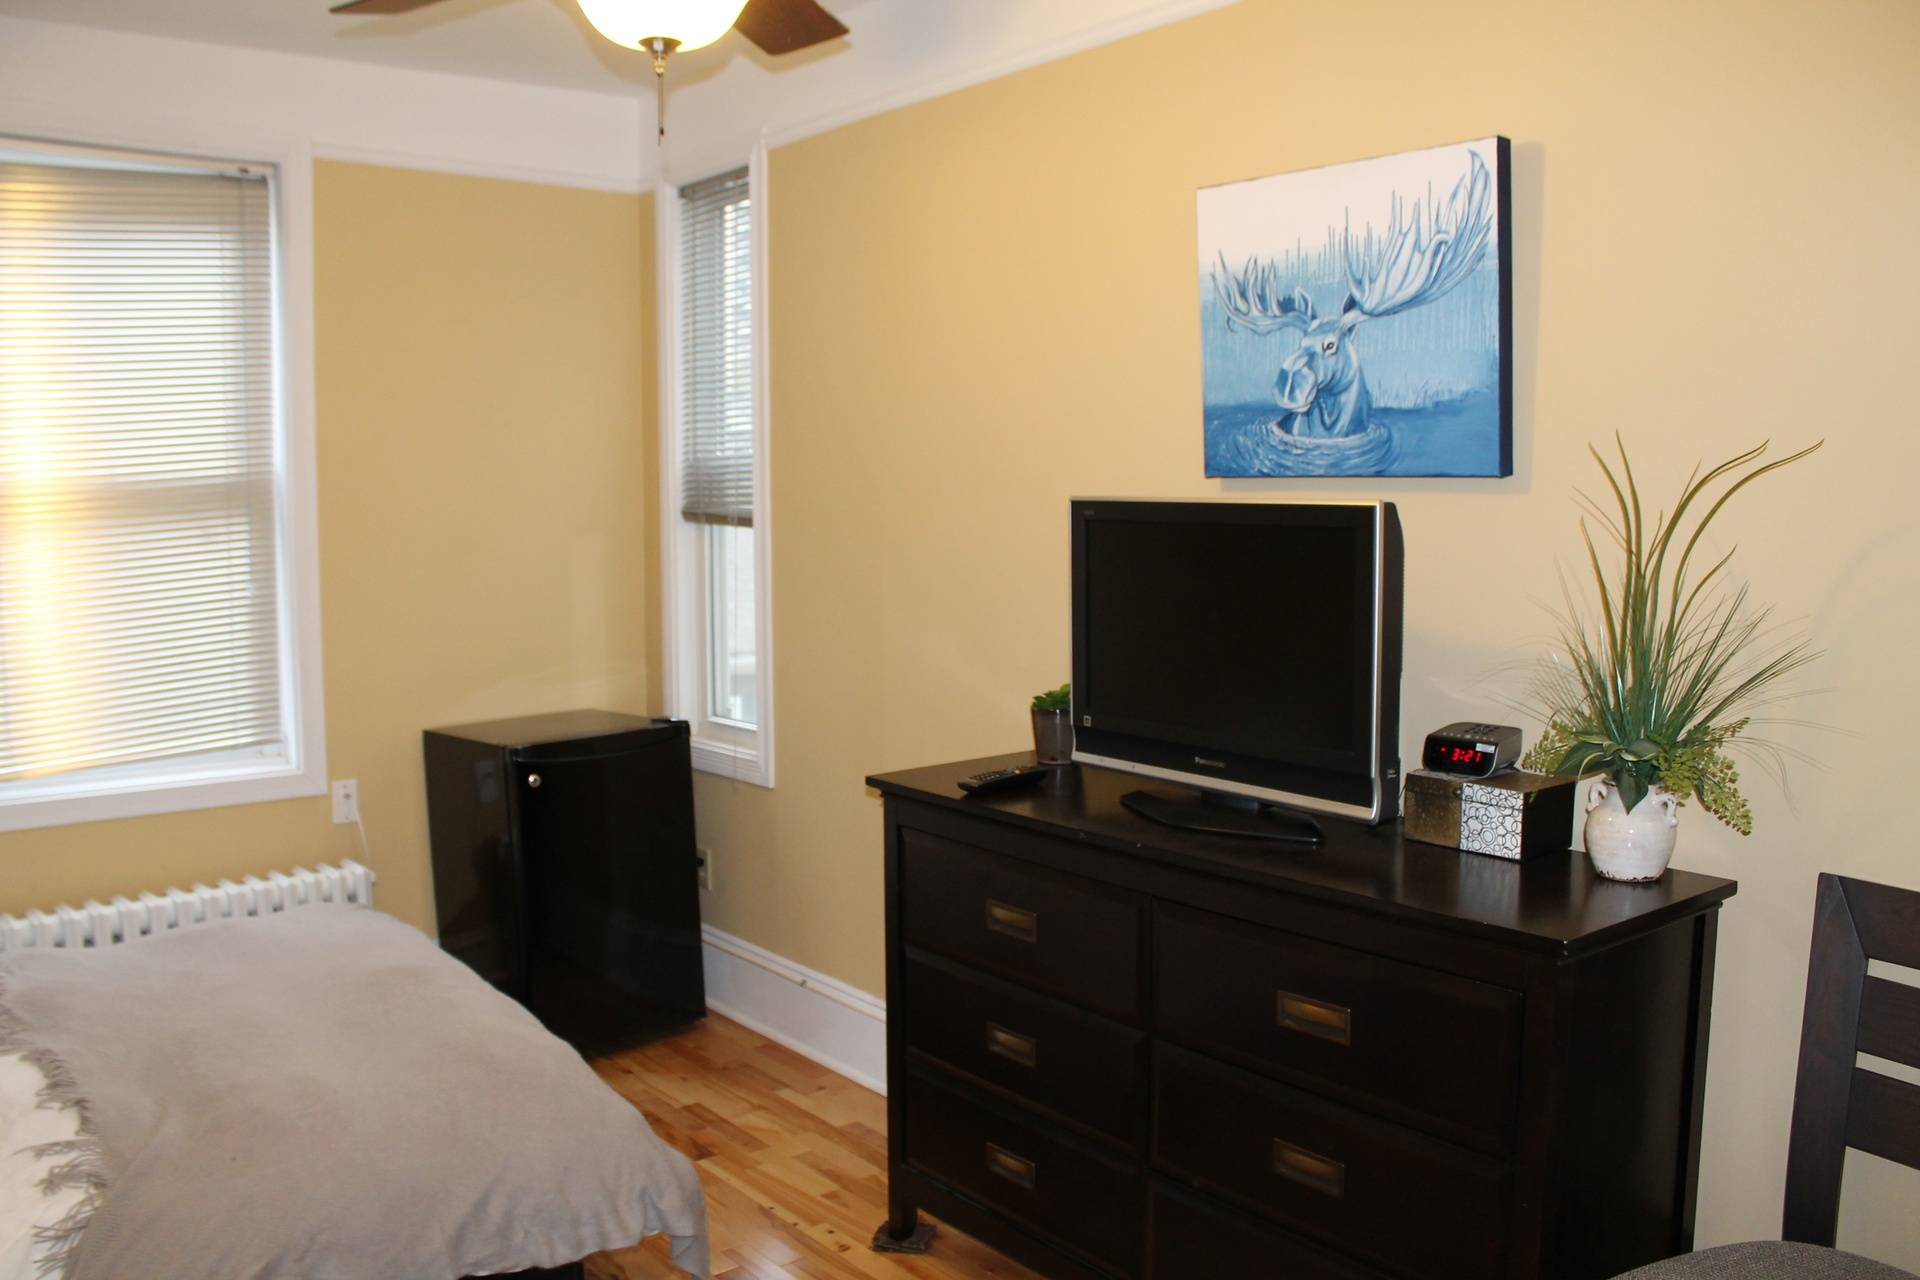 Dresser and bed area